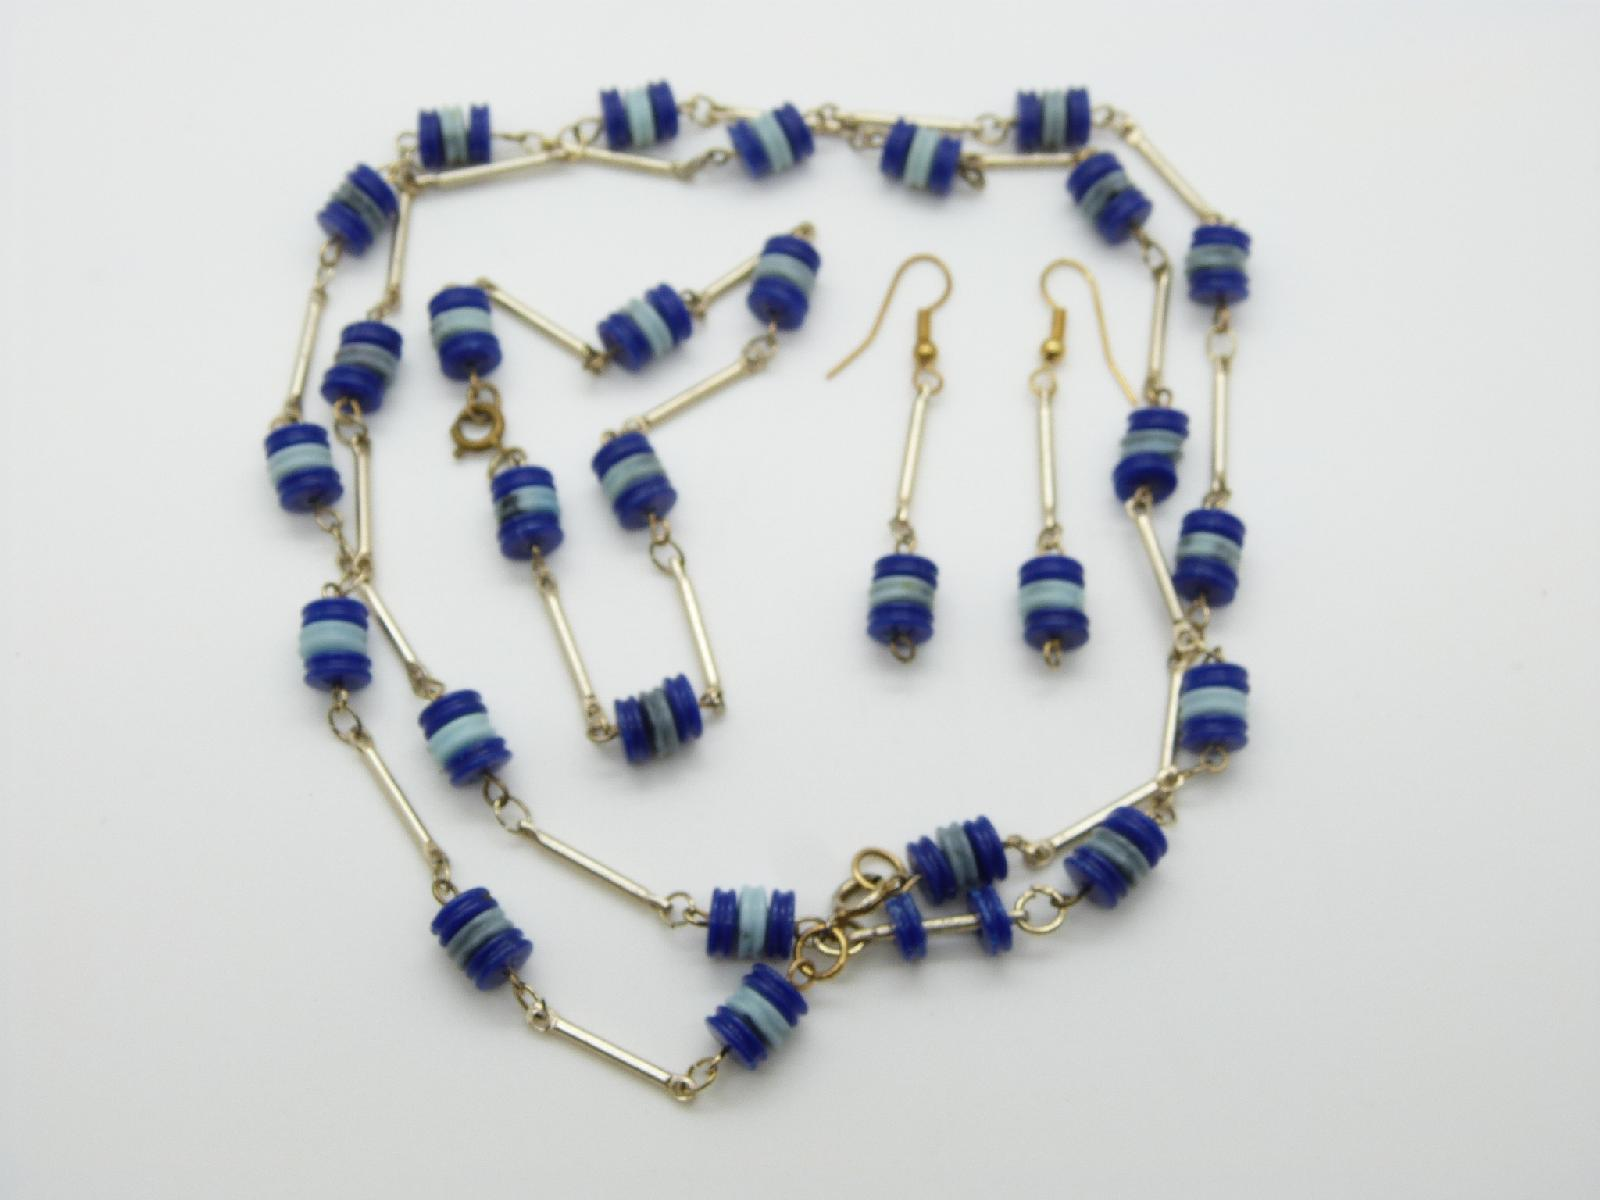 £13.00 - Vintage 60s Two Tone Blue Rondel Bead Necklace Bracelet and Earring Set